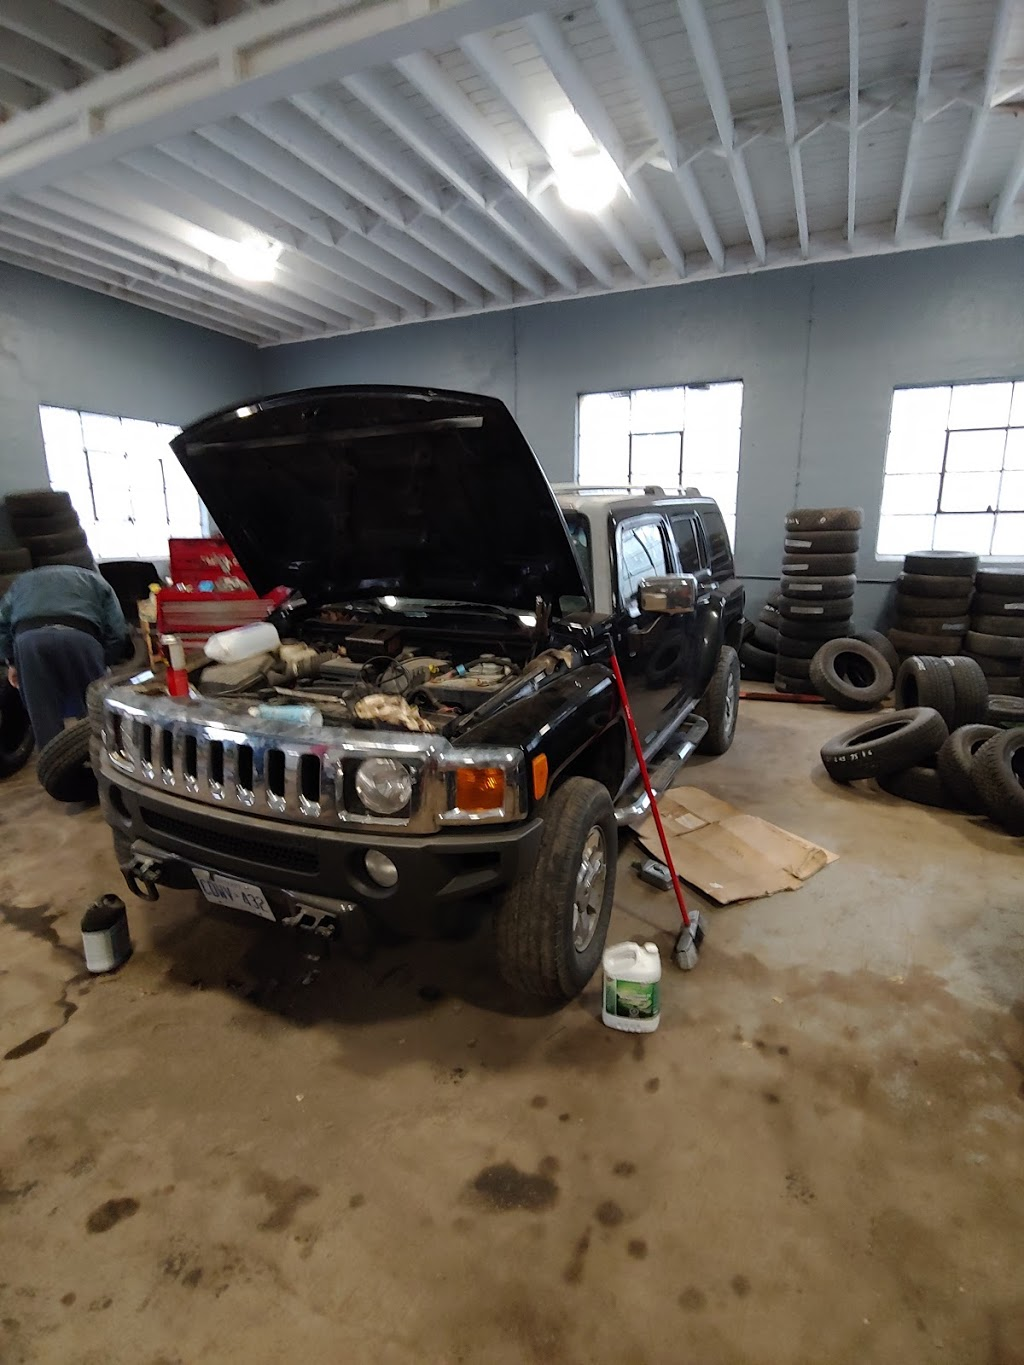 Maxx Tires & Lube   car repair   61 Guelph St, Georgetown, ON L7G 3Z6, Canada   9058739255 OR +1 905-873-9255